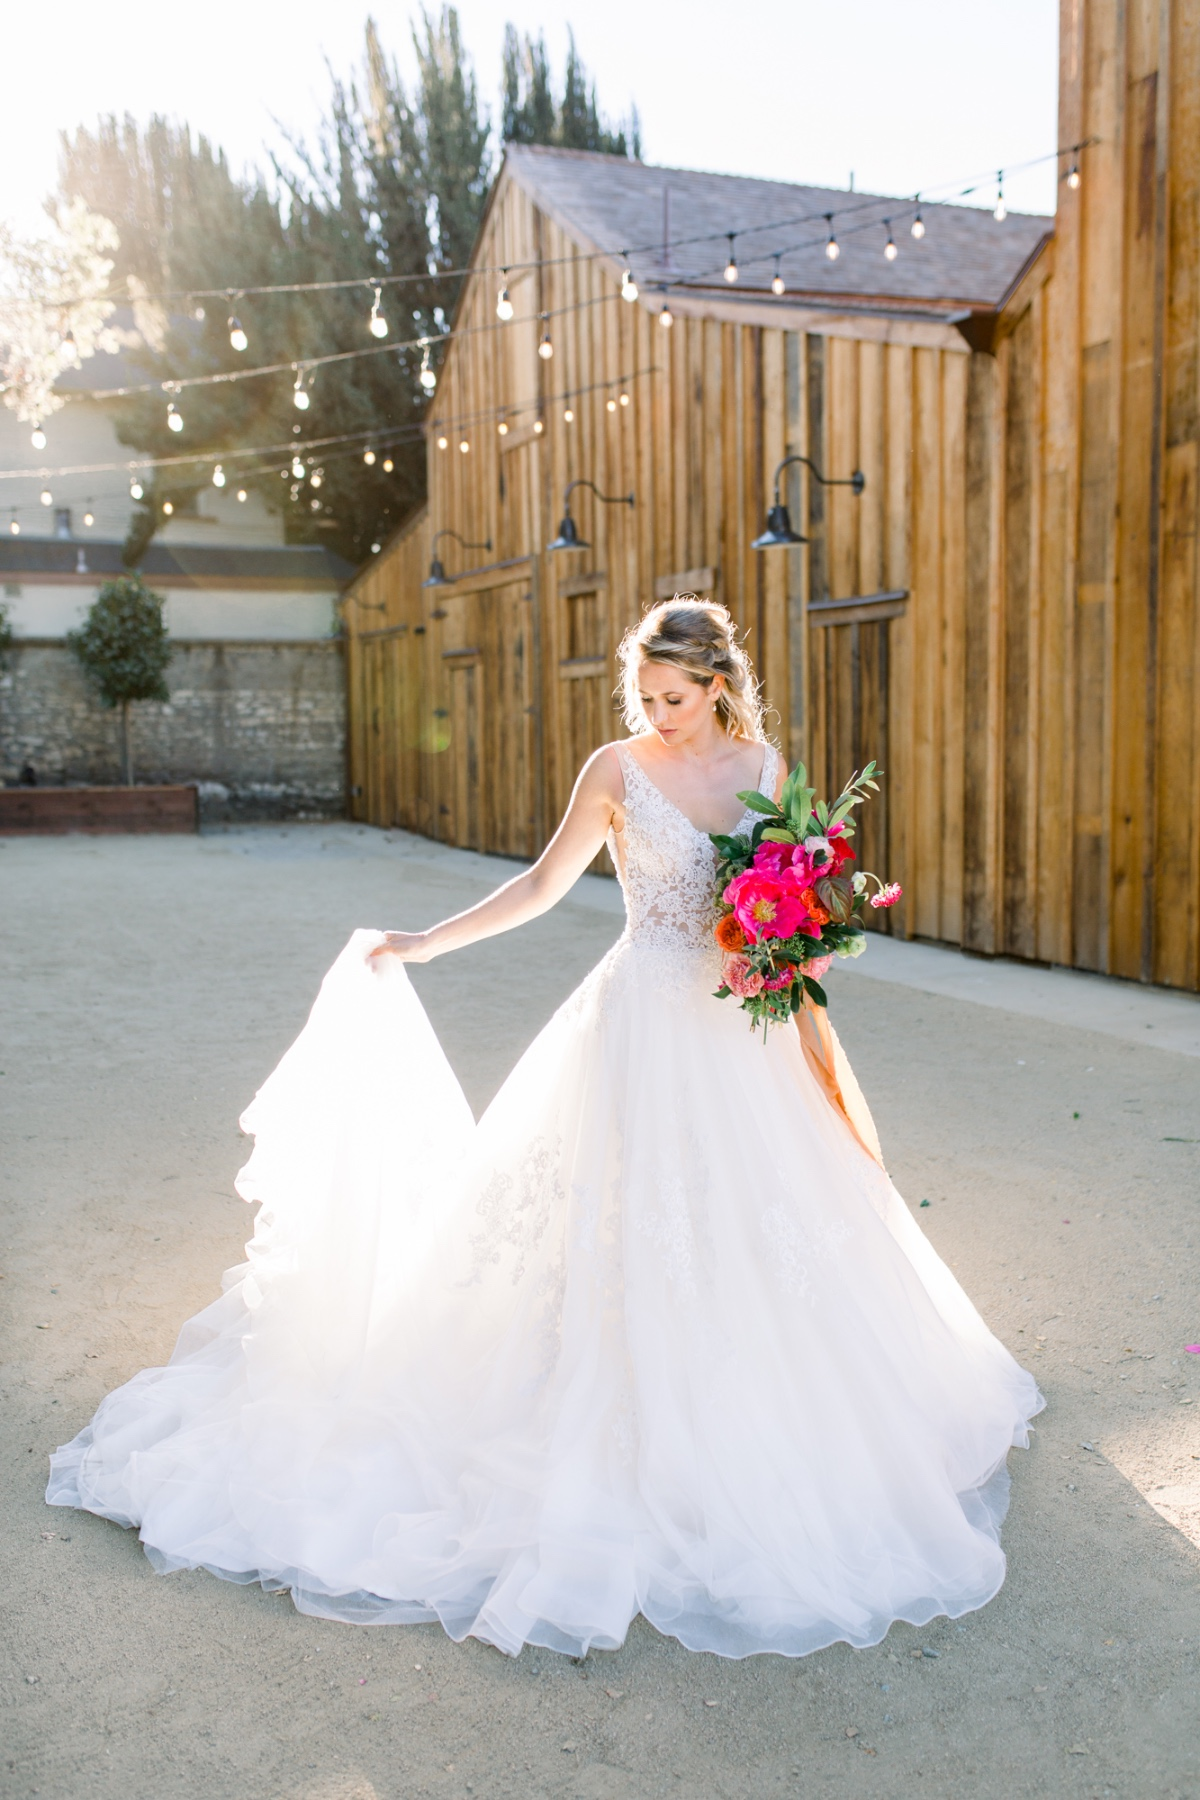 Full skirt wedding dress